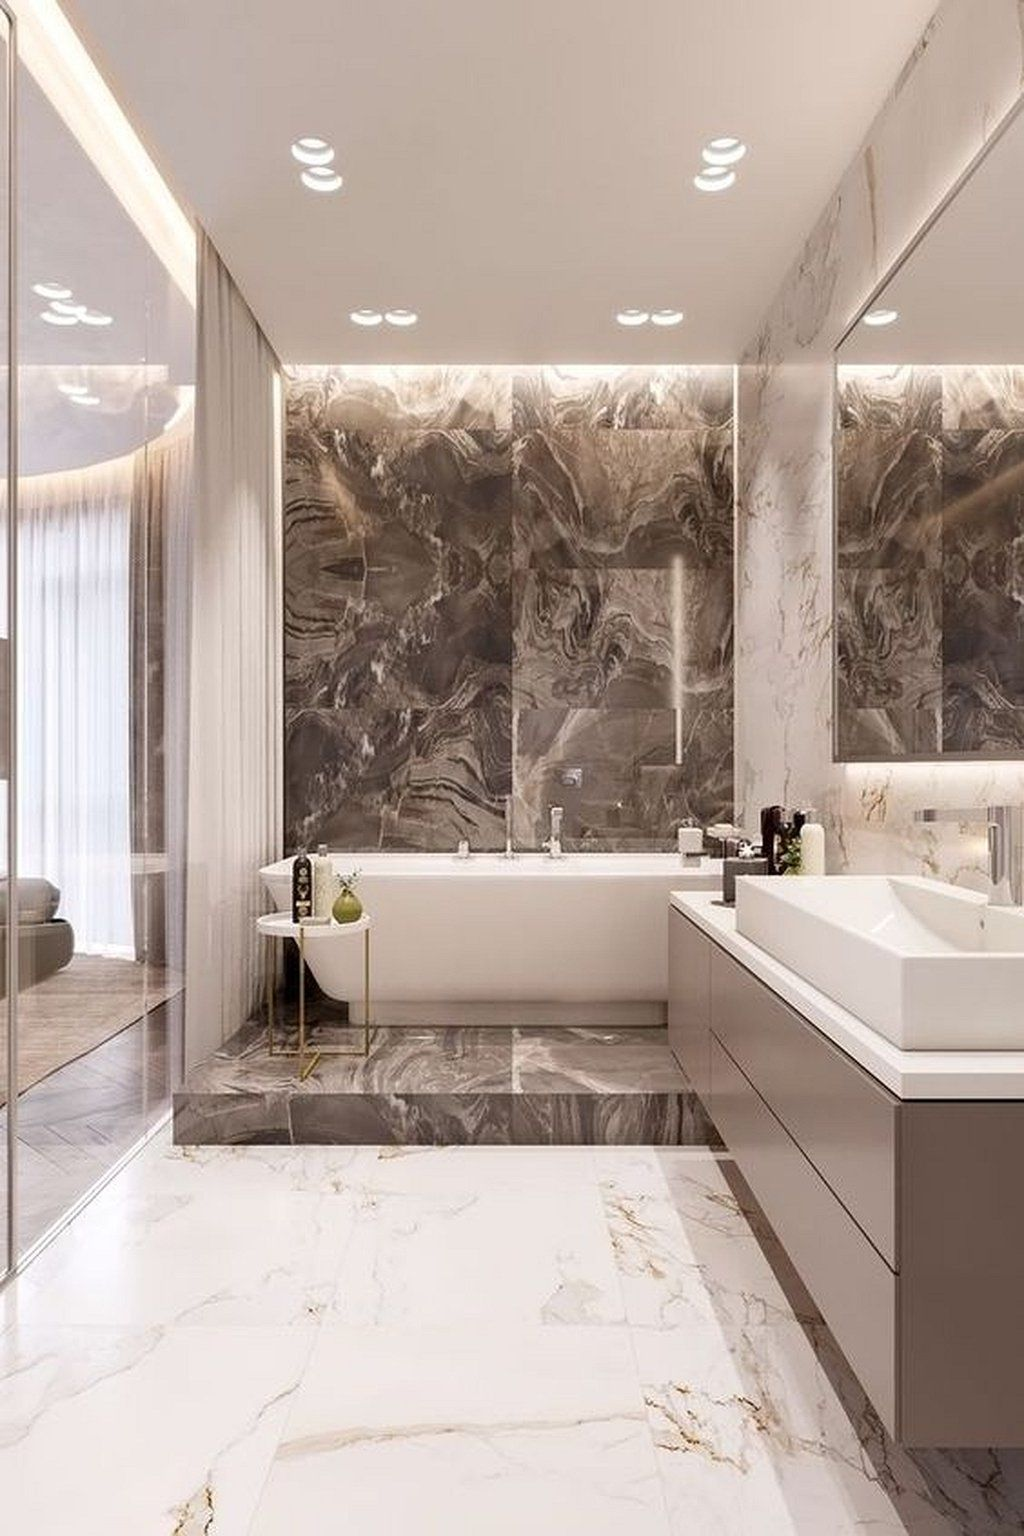 Bathroom Inspiration Modern Small Ideas Https Www Mobmasker Com Bathroom Inspirat Bathroom Inspiration Modern Bathroom Interior Design Bathroom Design Luxury